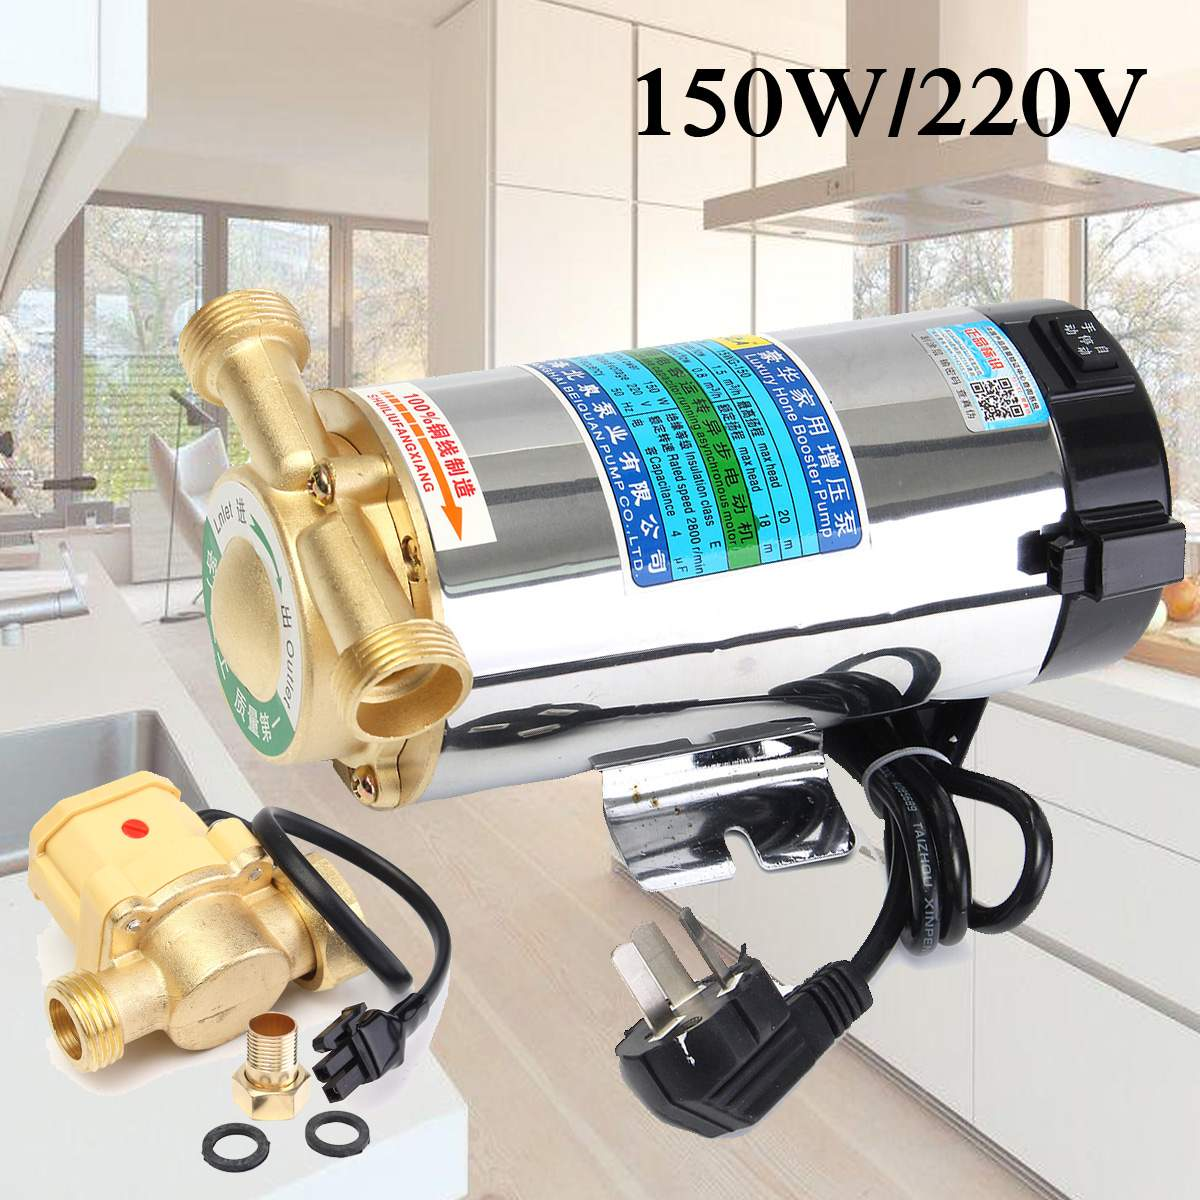 150W Mini Pipeline Pump Automatic Circulating Water Booster Pump 220V/50HZ Electric Pressure Pump Boosting Pump For Water Heater